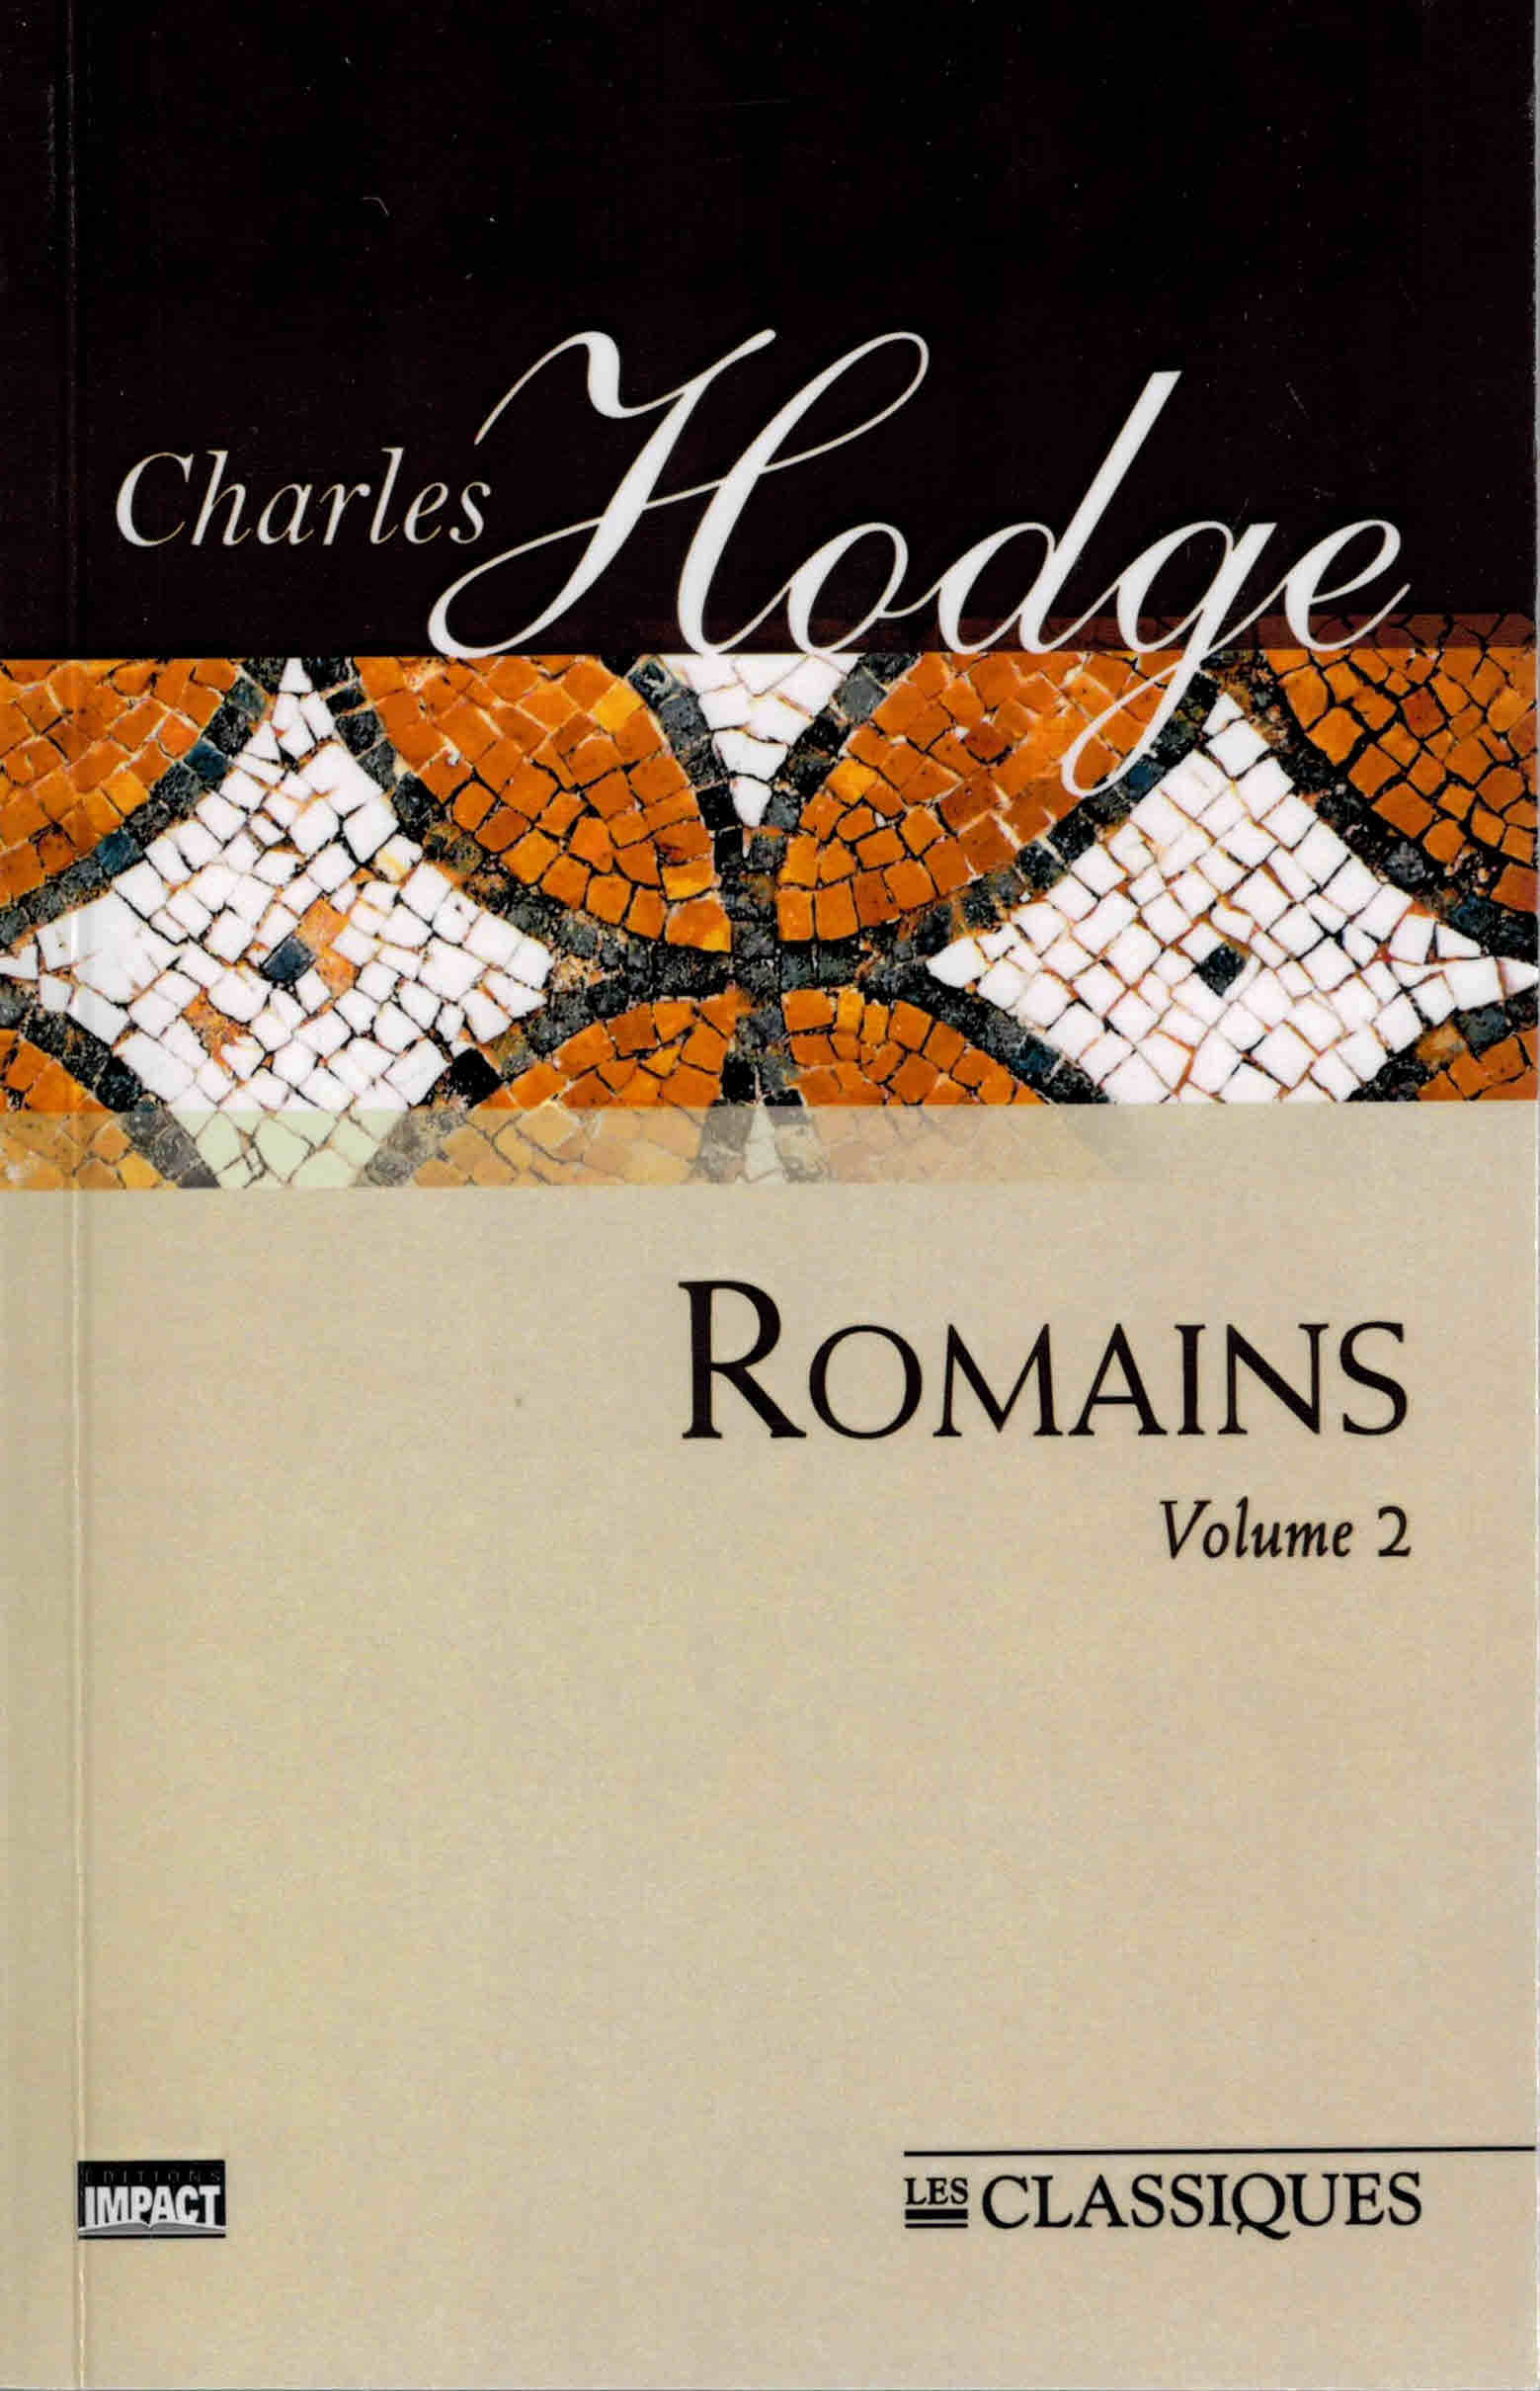 Romains volume 2 - Hodge